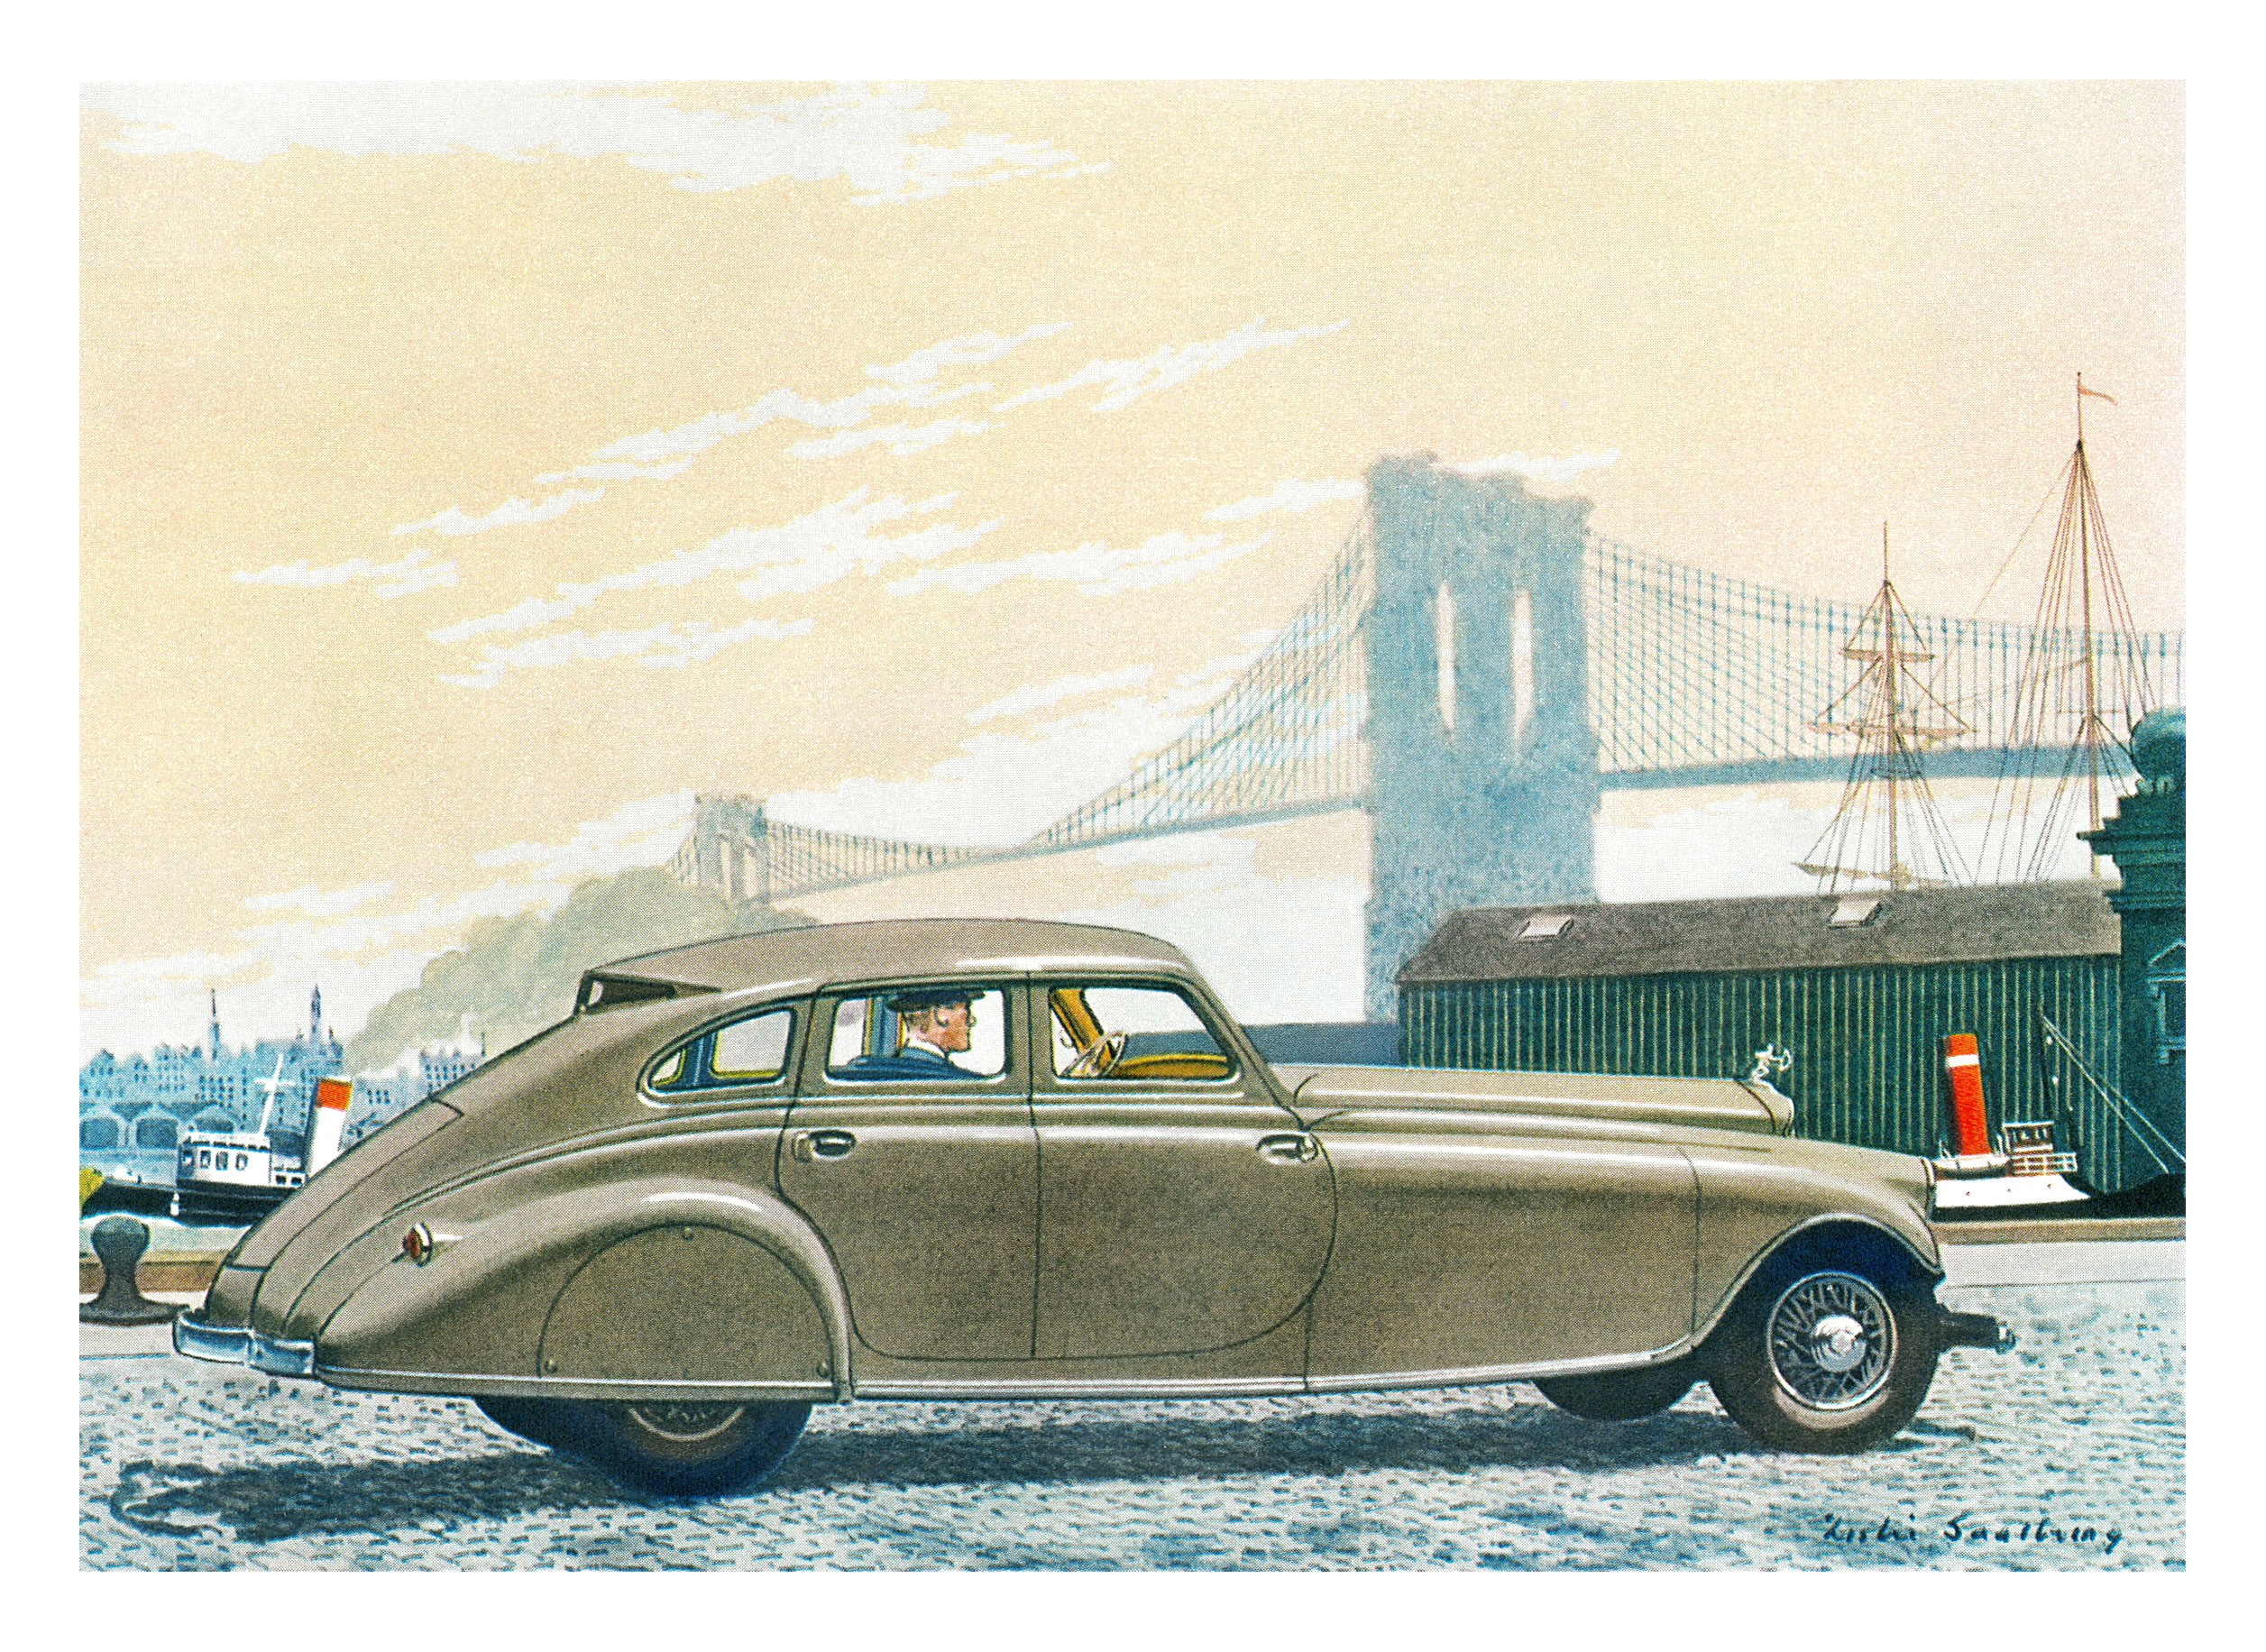 1933 Pierce Silver Arrow - Illustrated by Leslie Saalburg